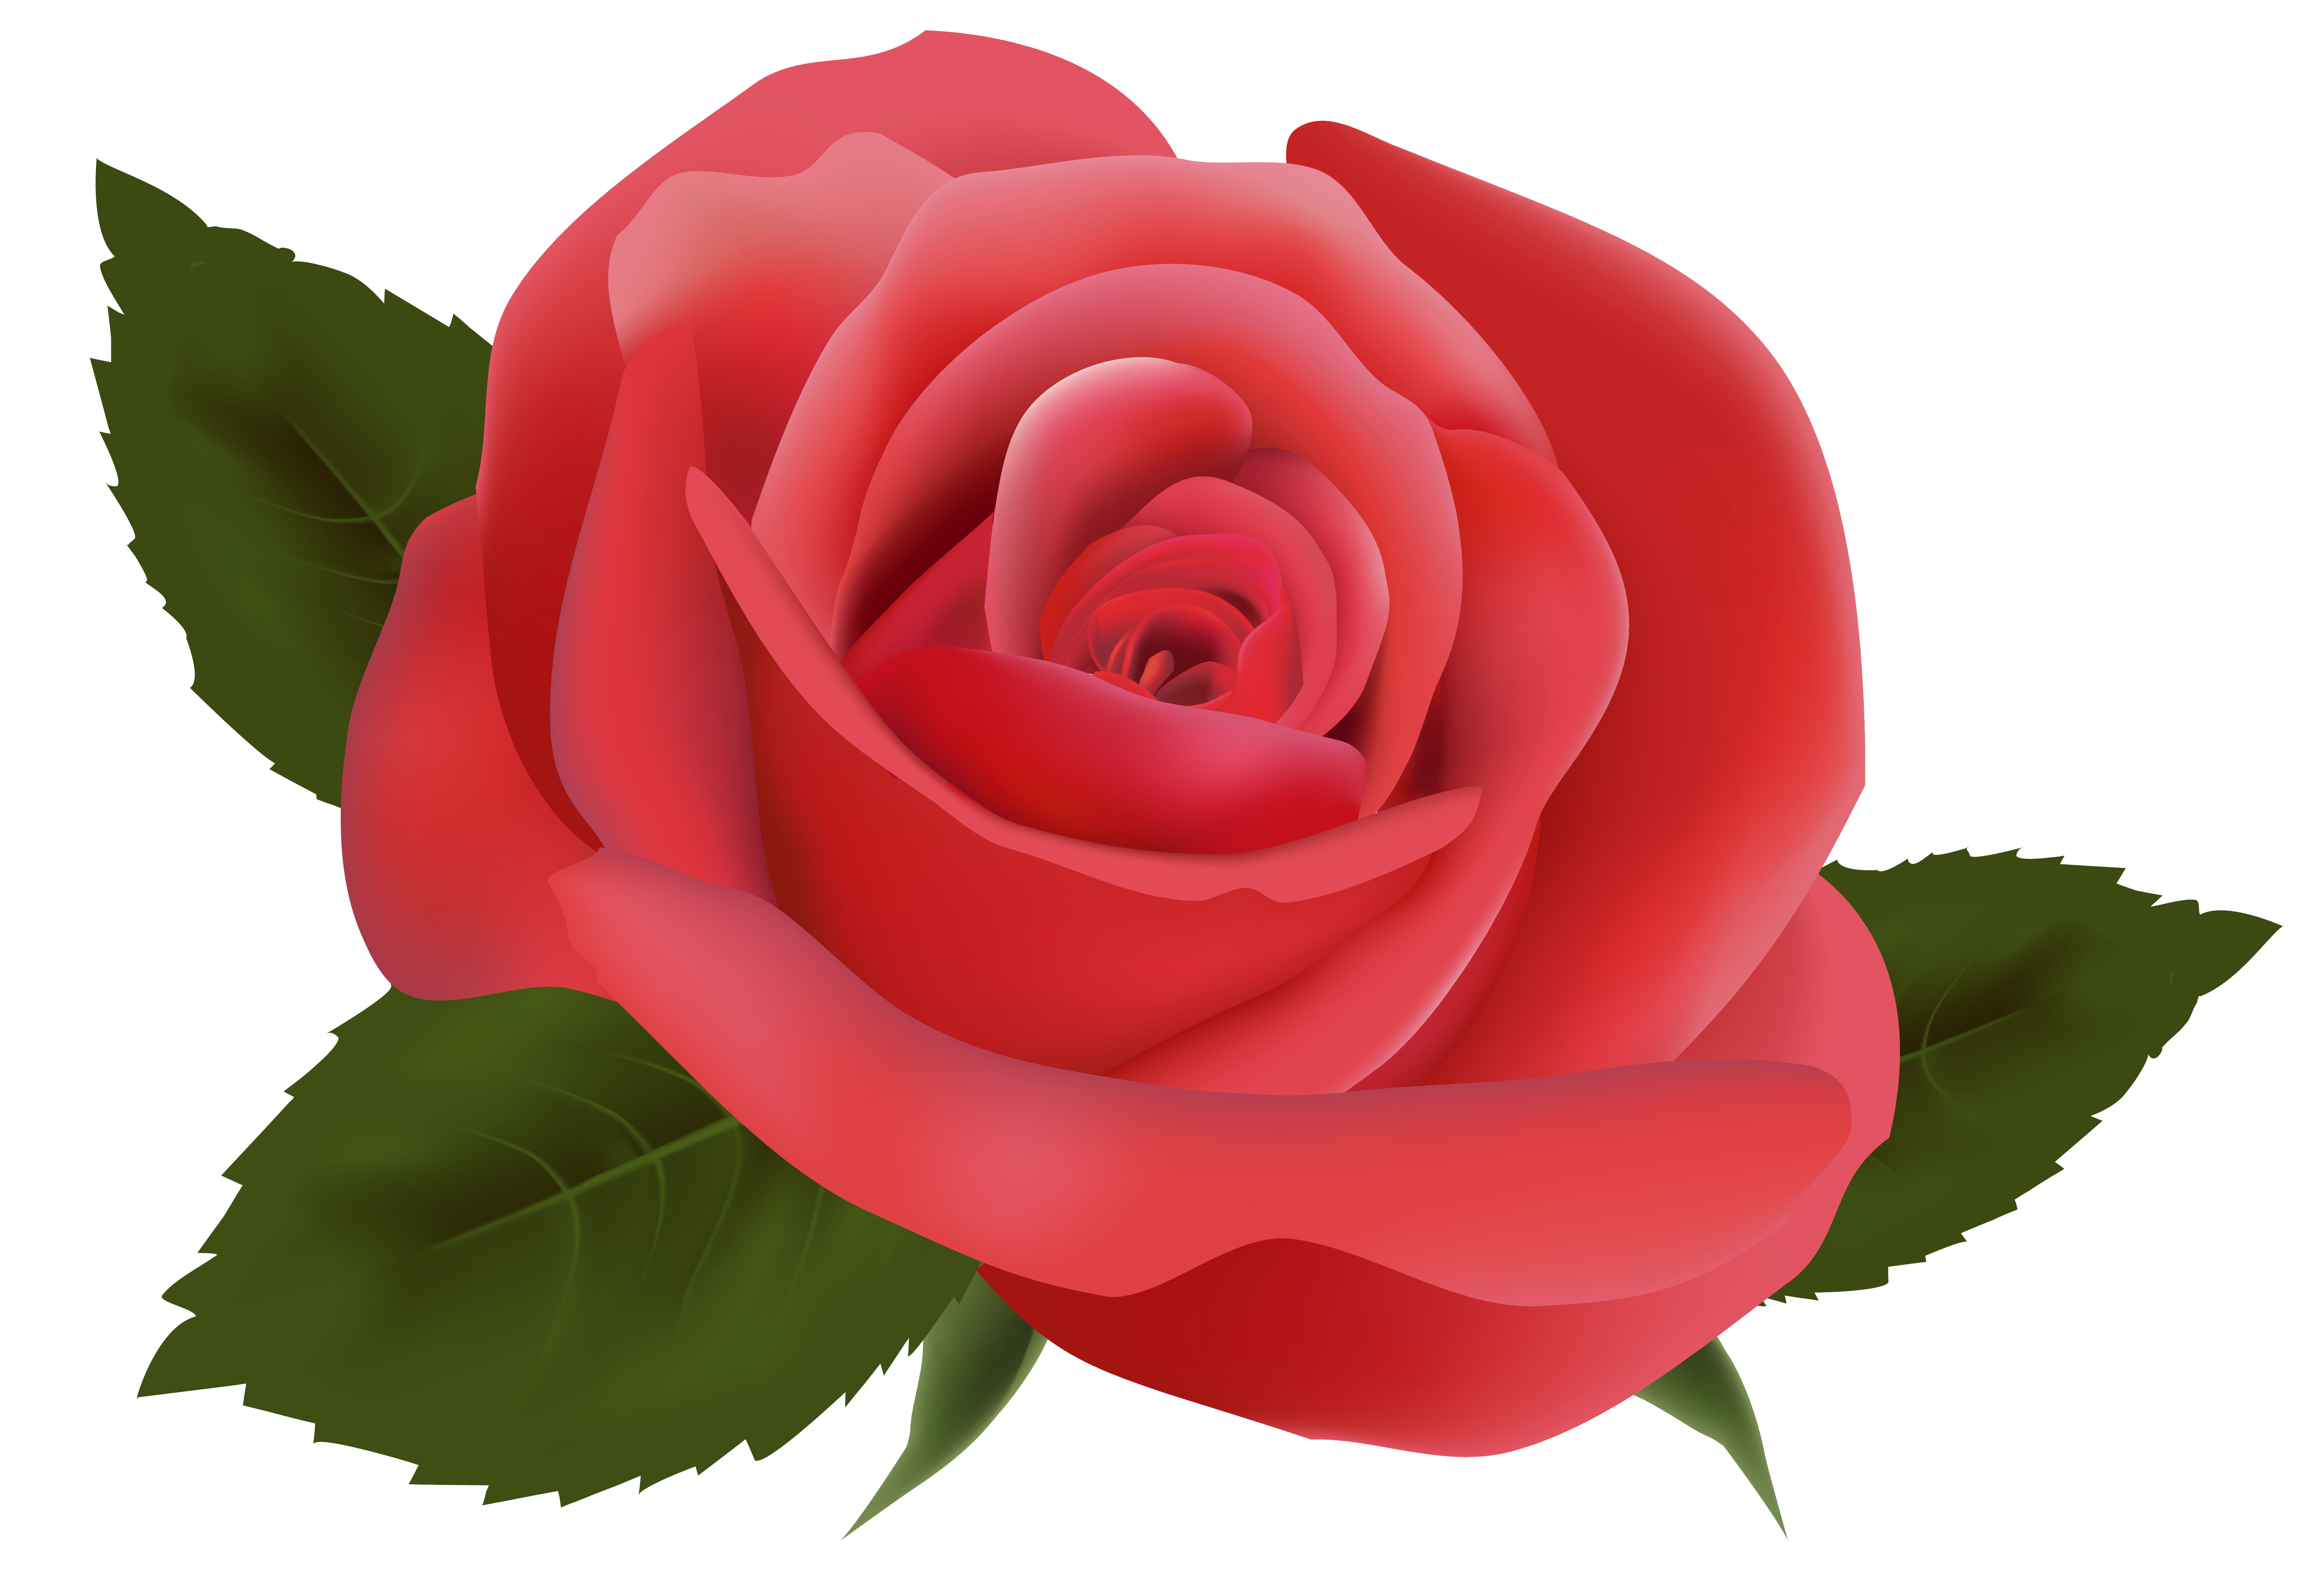 Roses clipart png. Red rose image gallery